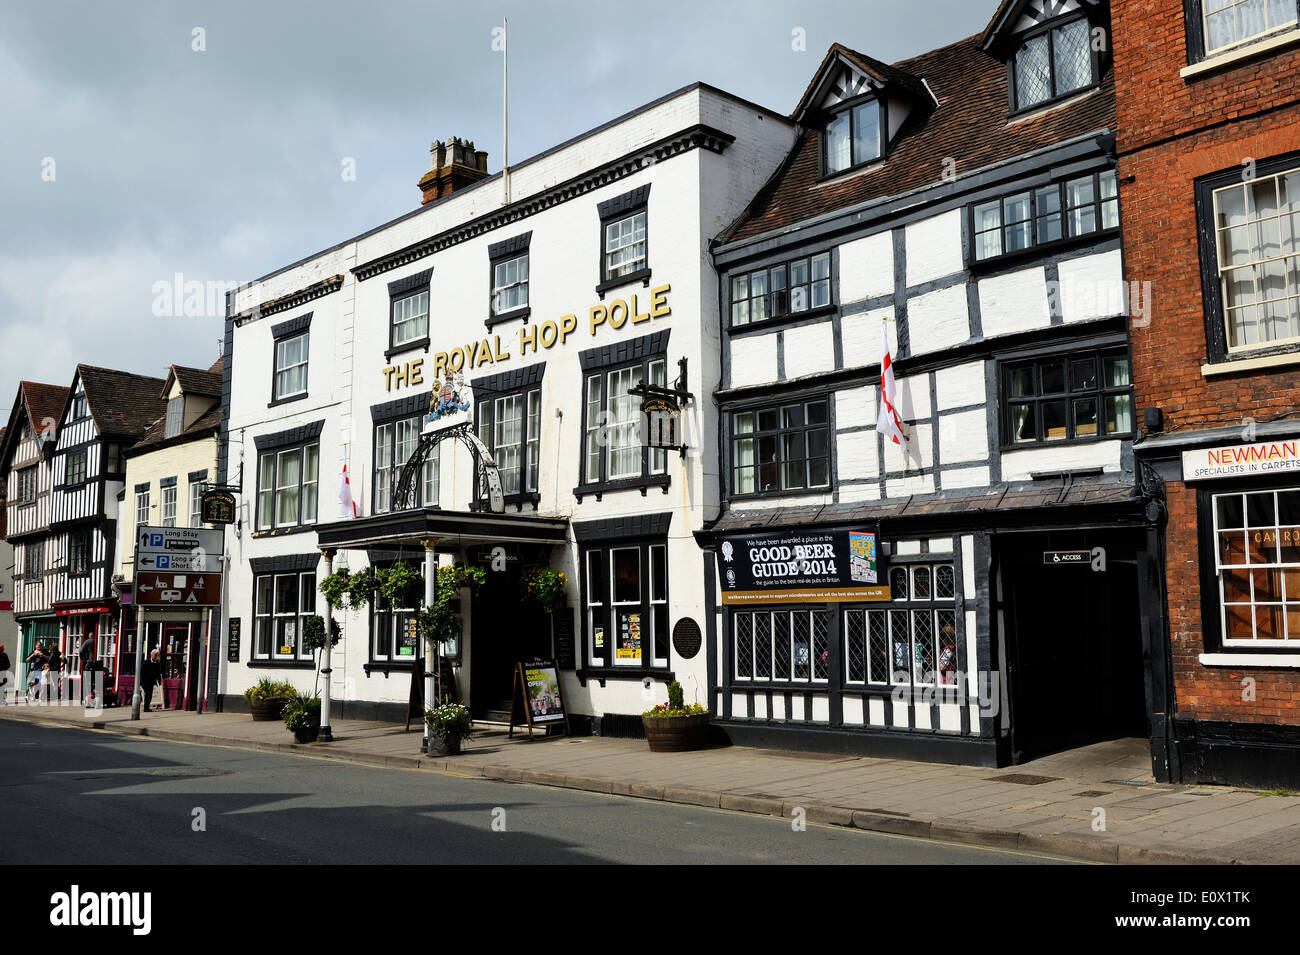 The Royal Hop Pole public house on Church Street in Tewkesbury, Gloucestershire, England - Stock Image